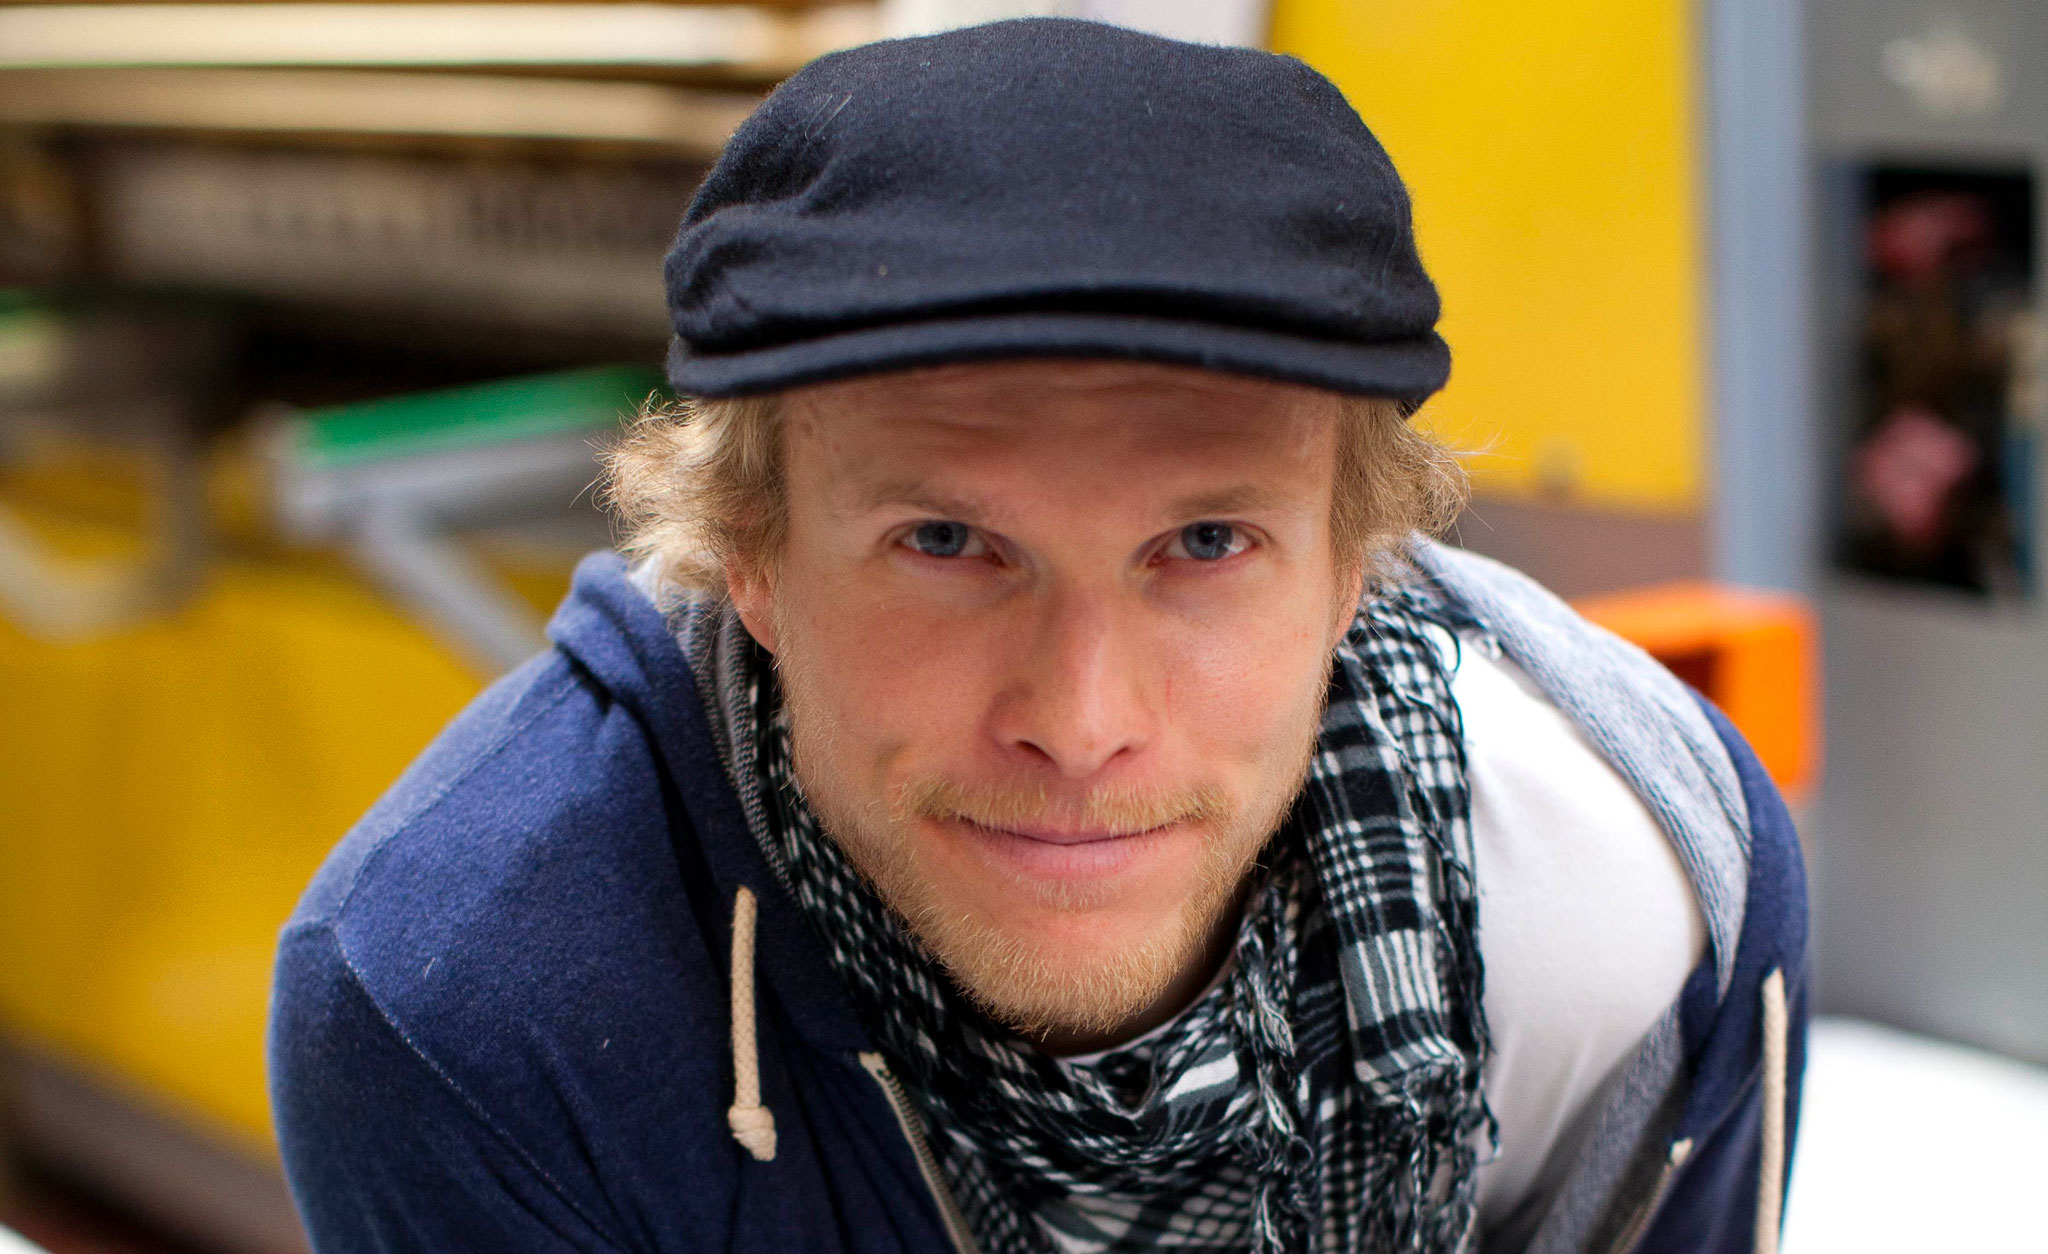 Andreas Fransson is a Swedish ski mountaineer who lives in Chamonix, France.